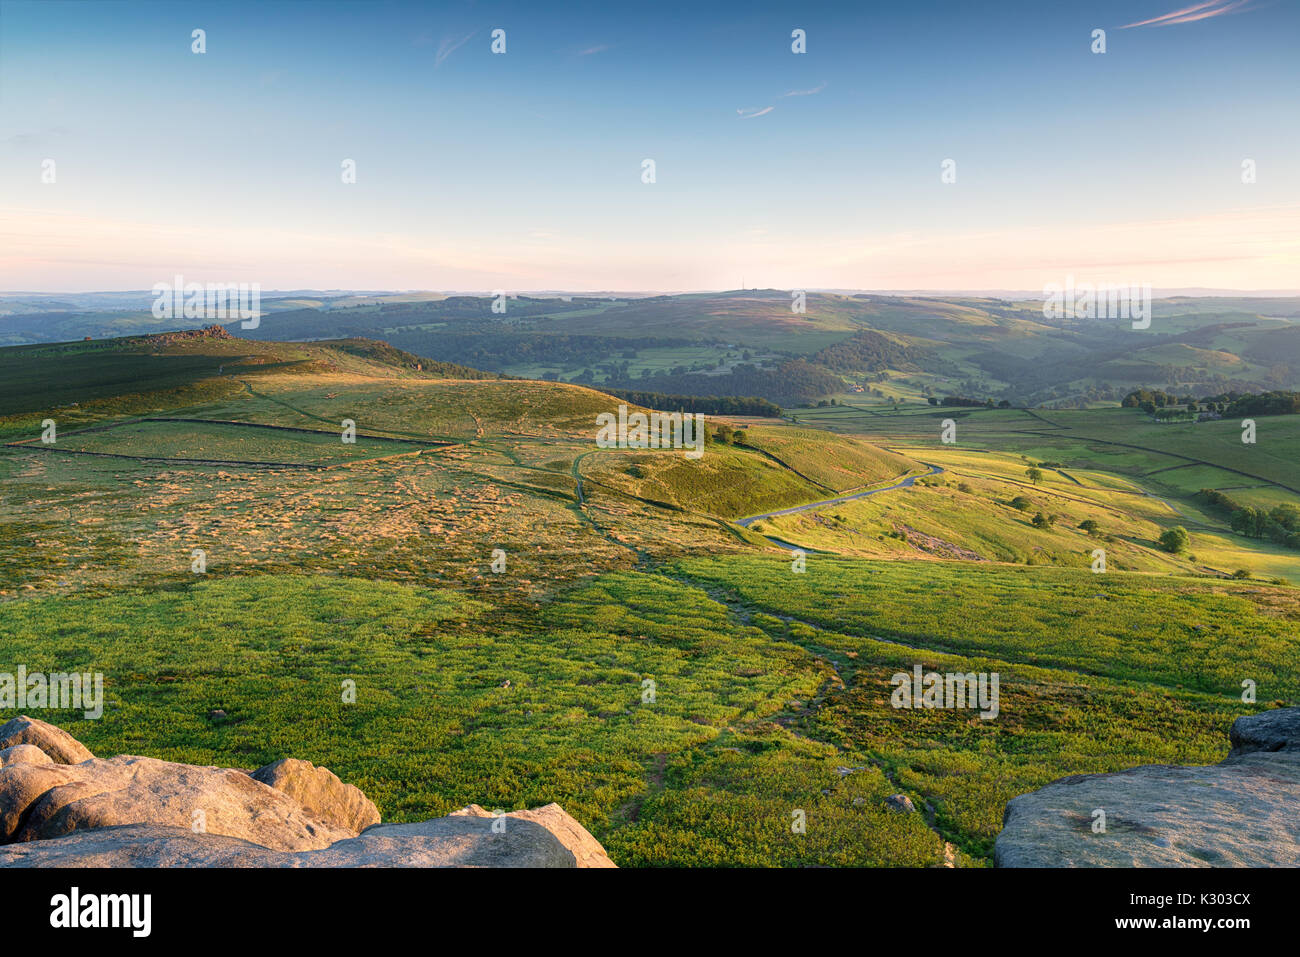 The view from Higger Tor in the Peak District national park - Stock Image